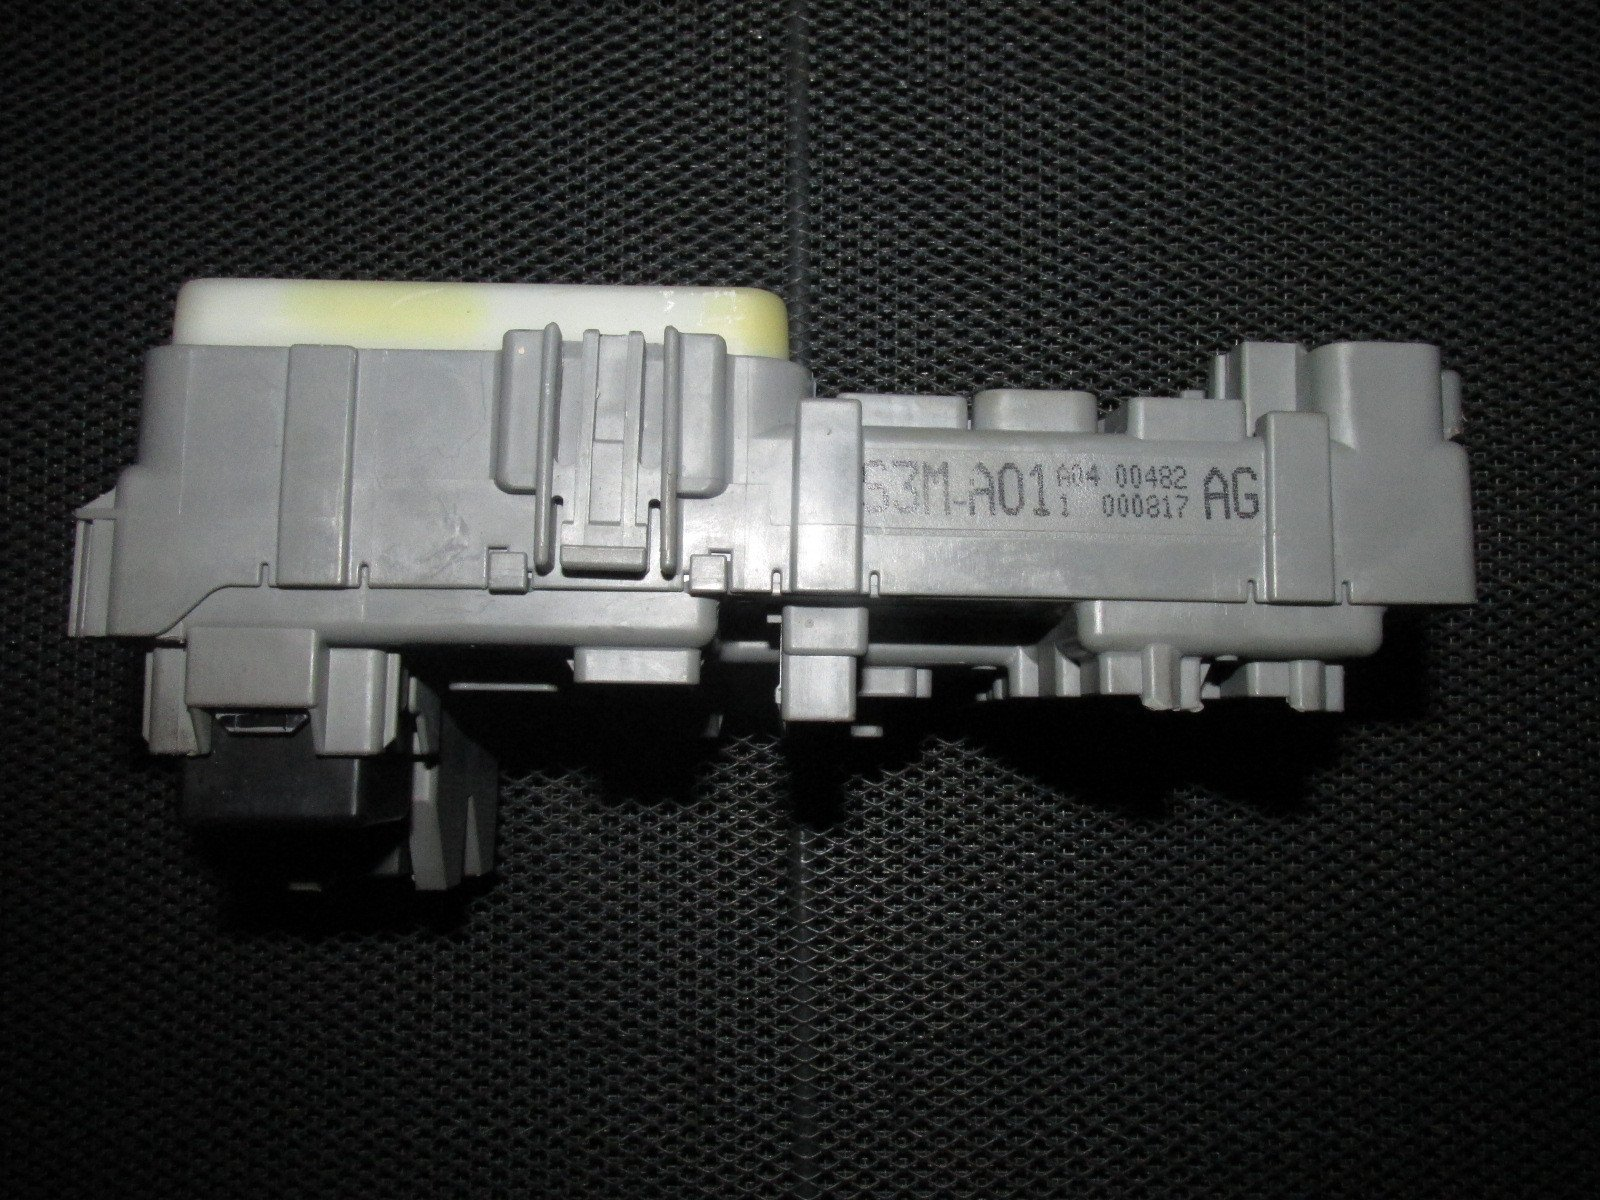 Peachy 01 02 03 Acura Cl Oem Type S Fuse Box Left Autopartone Com Wiring Cloud Rdonaheevemohammedshrineorg